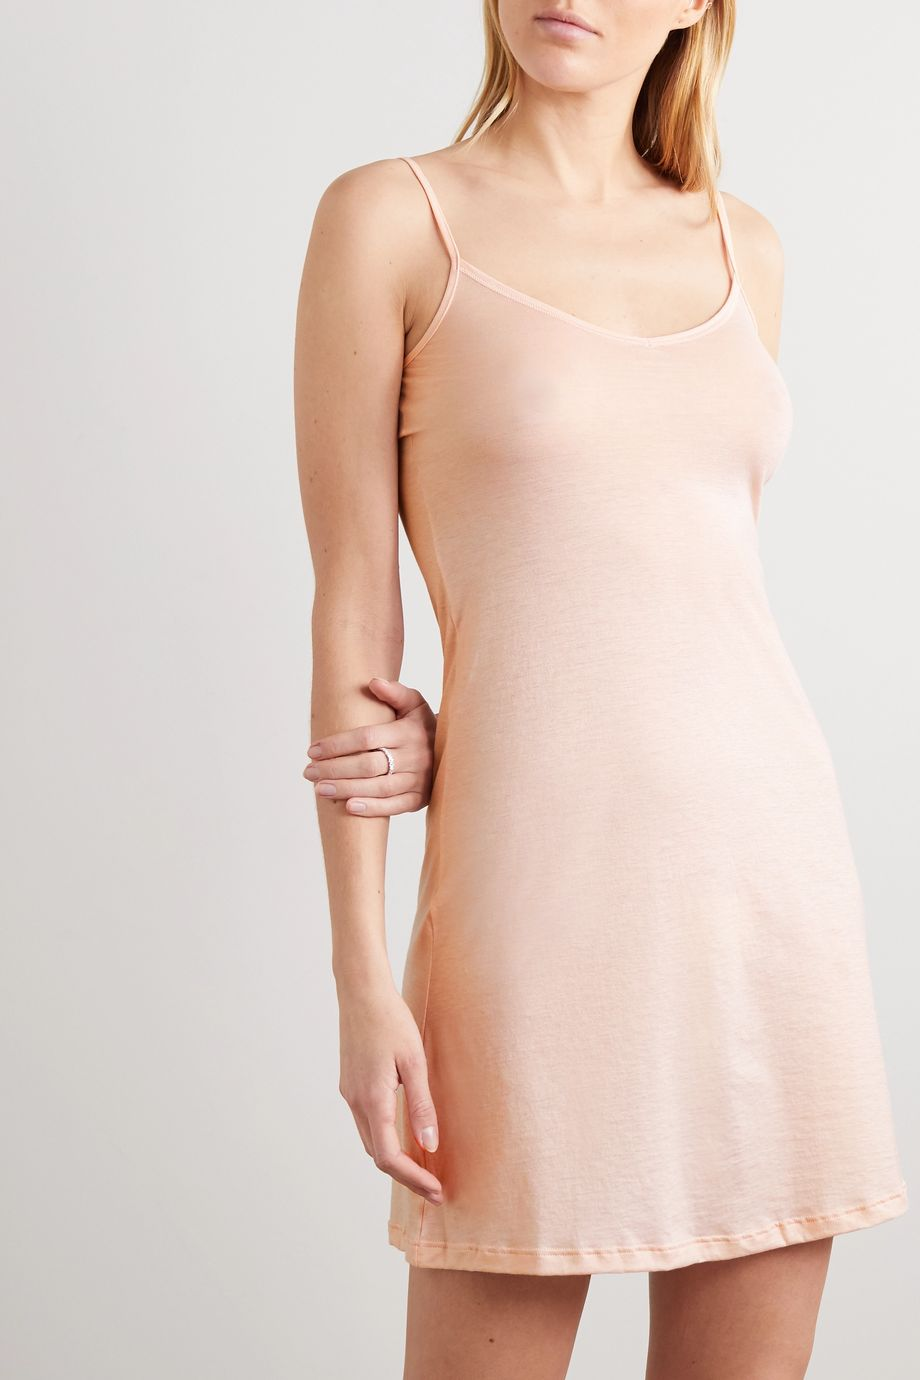 Hanro Ultralight mercerized cotton chemise